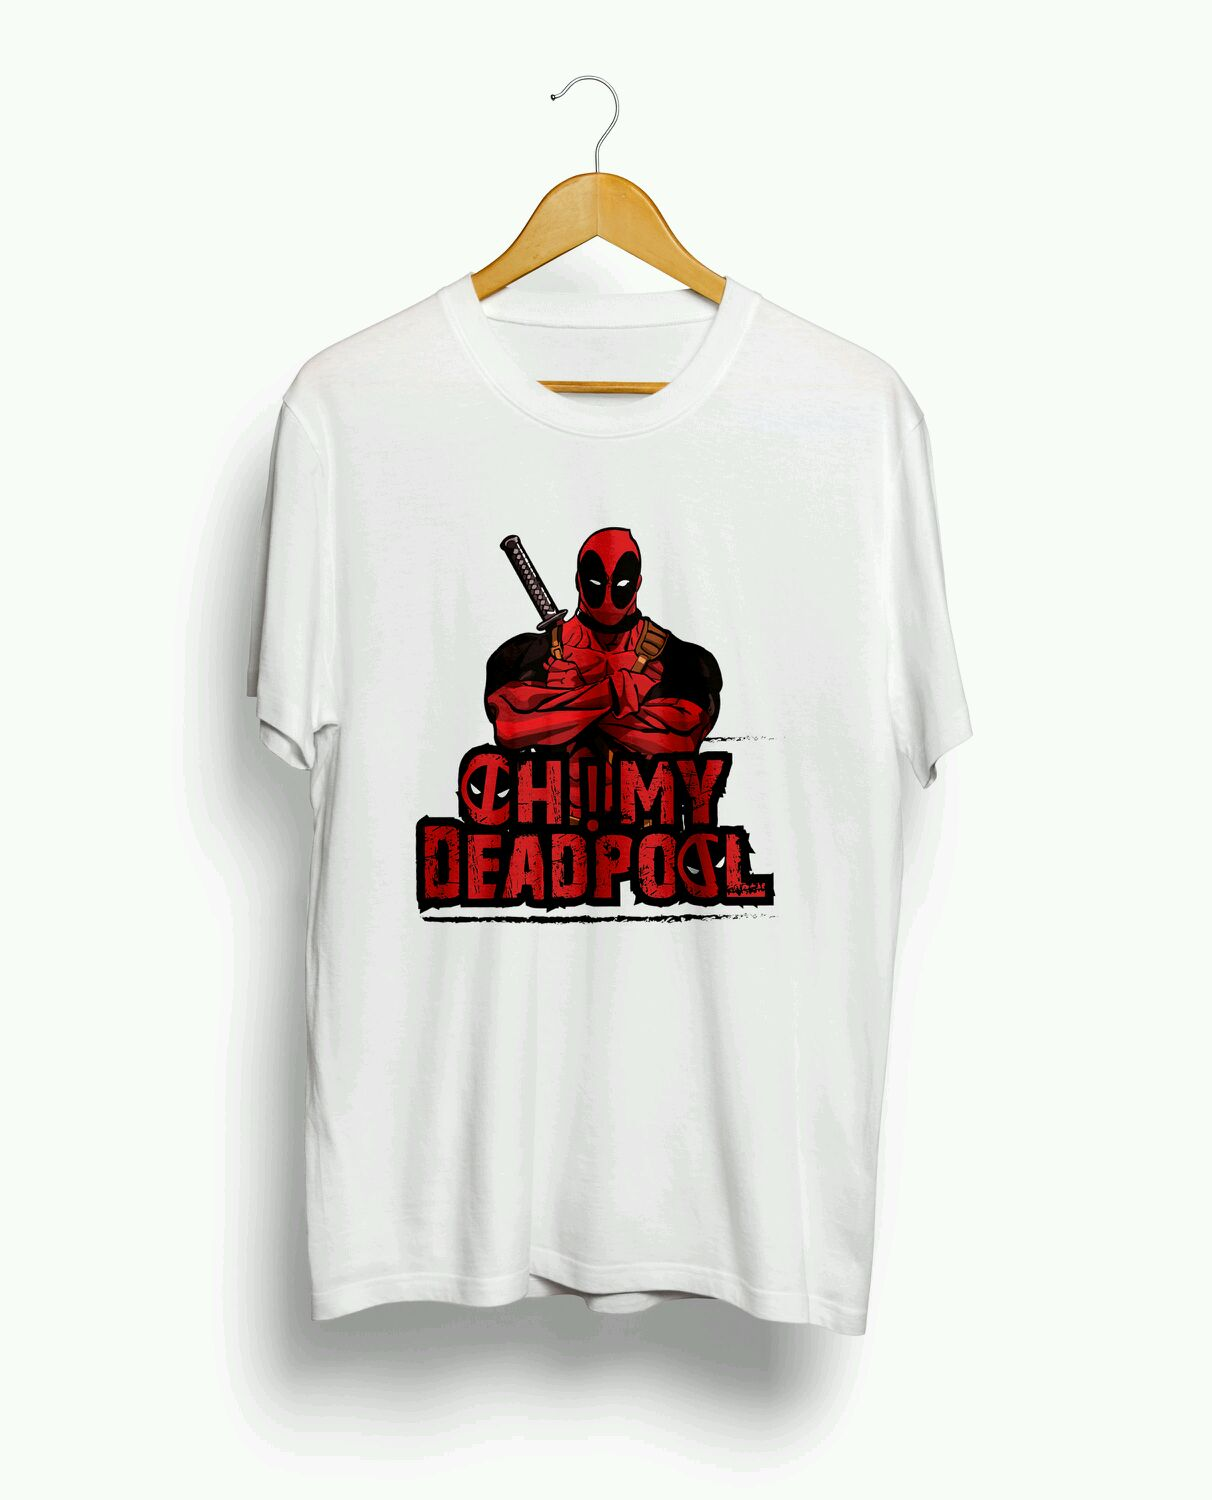 T shirt buy customized t shirts online in india t autos post for Buy customized t shirts